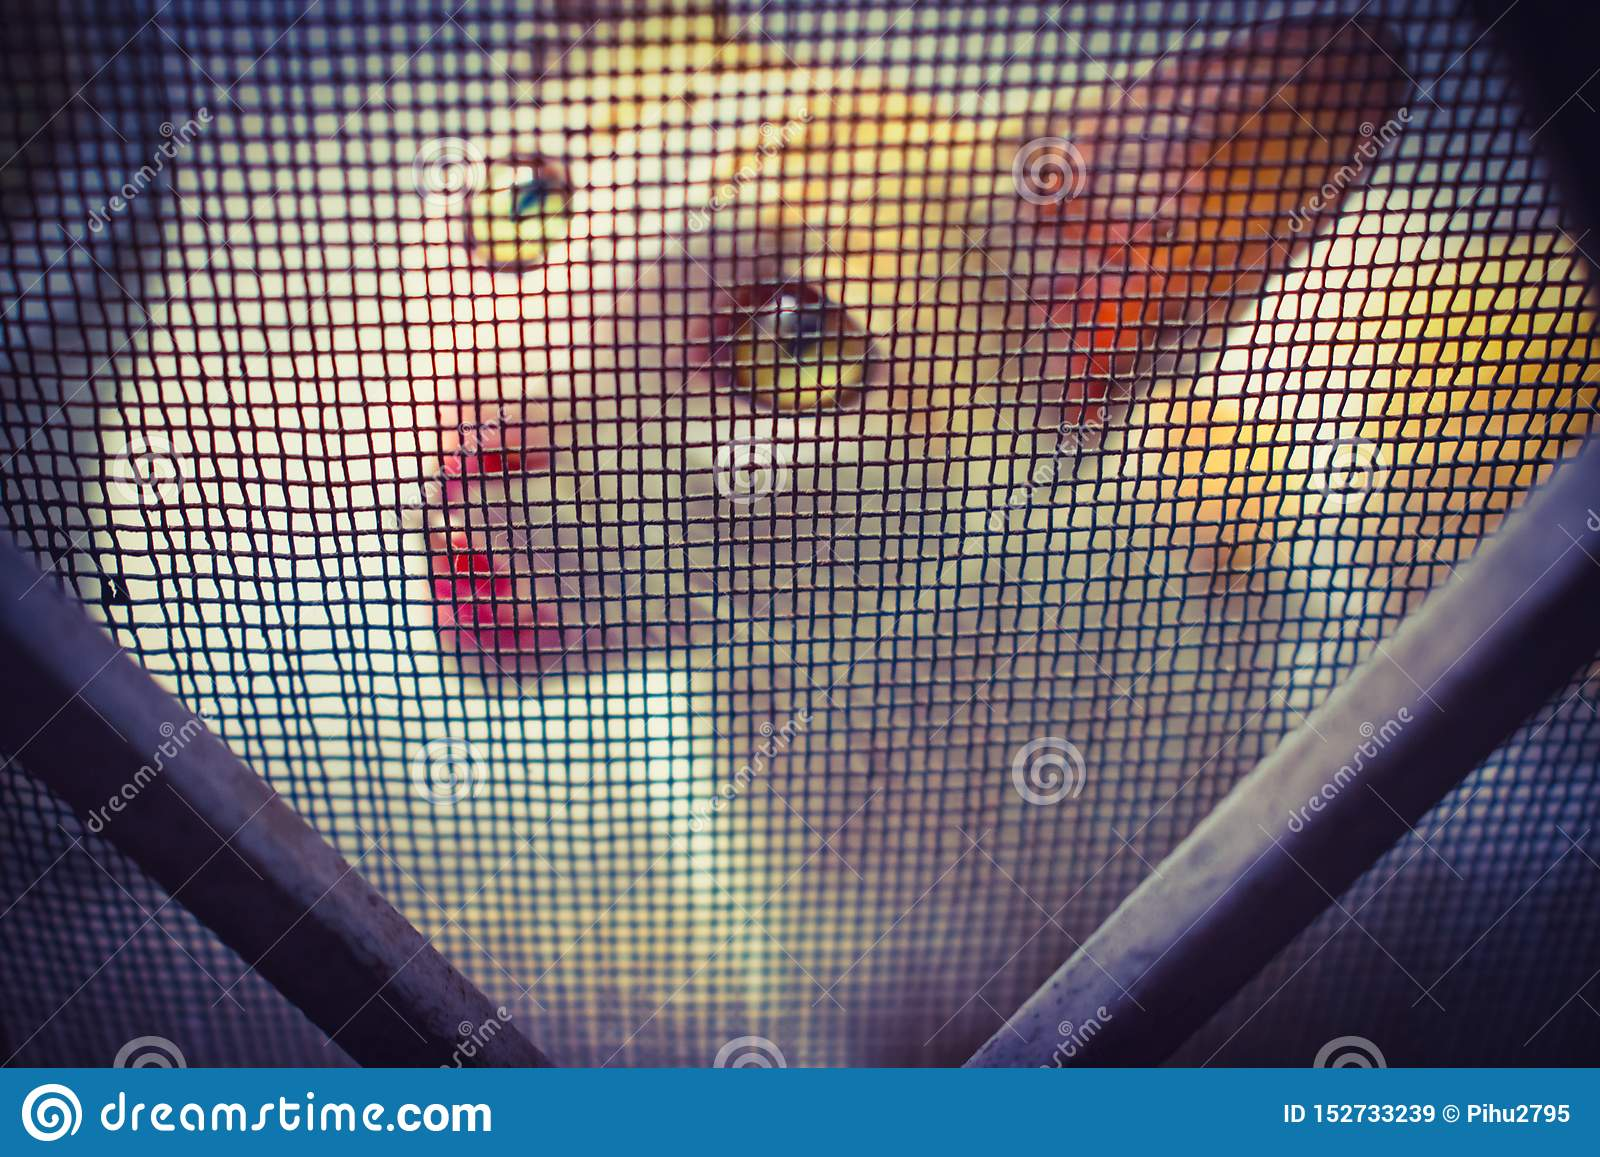 CAT WITH CUTE EXPRESSION looking through wire mesh